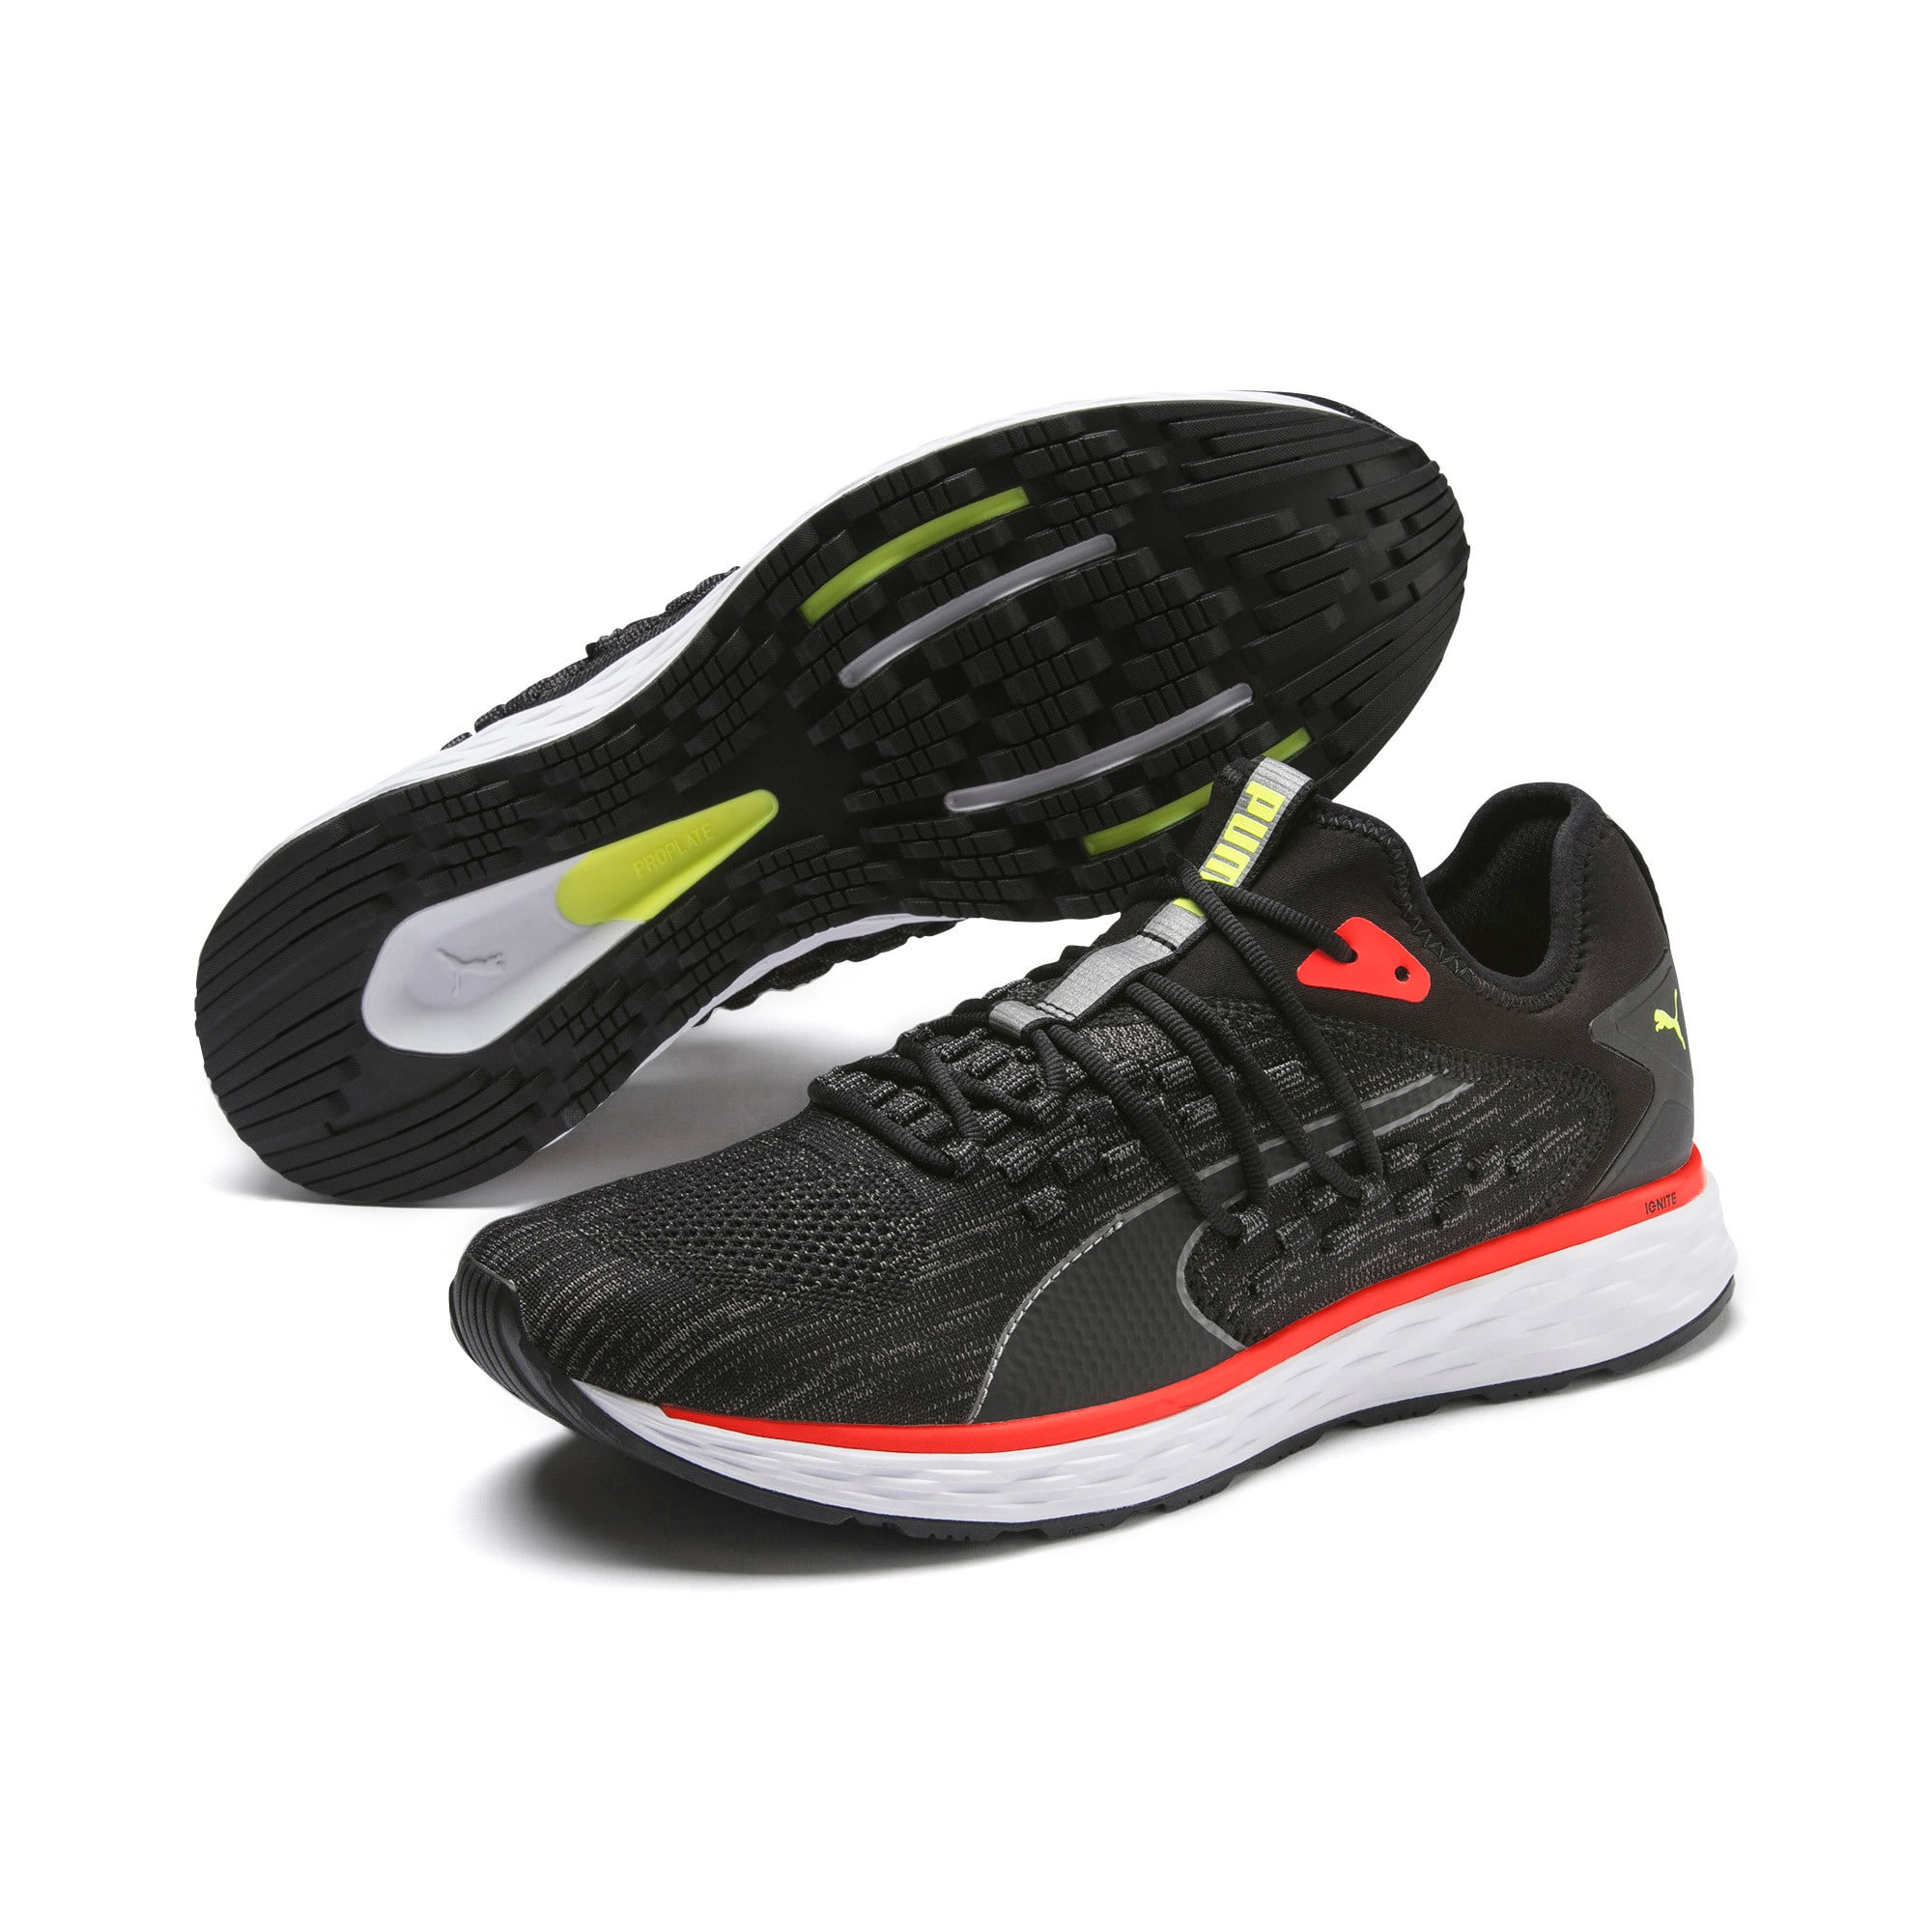 Thumbnail 3 of SPEED FUSEFIT Men's Running Shoes, Puma Black-Nrgy Red, medium